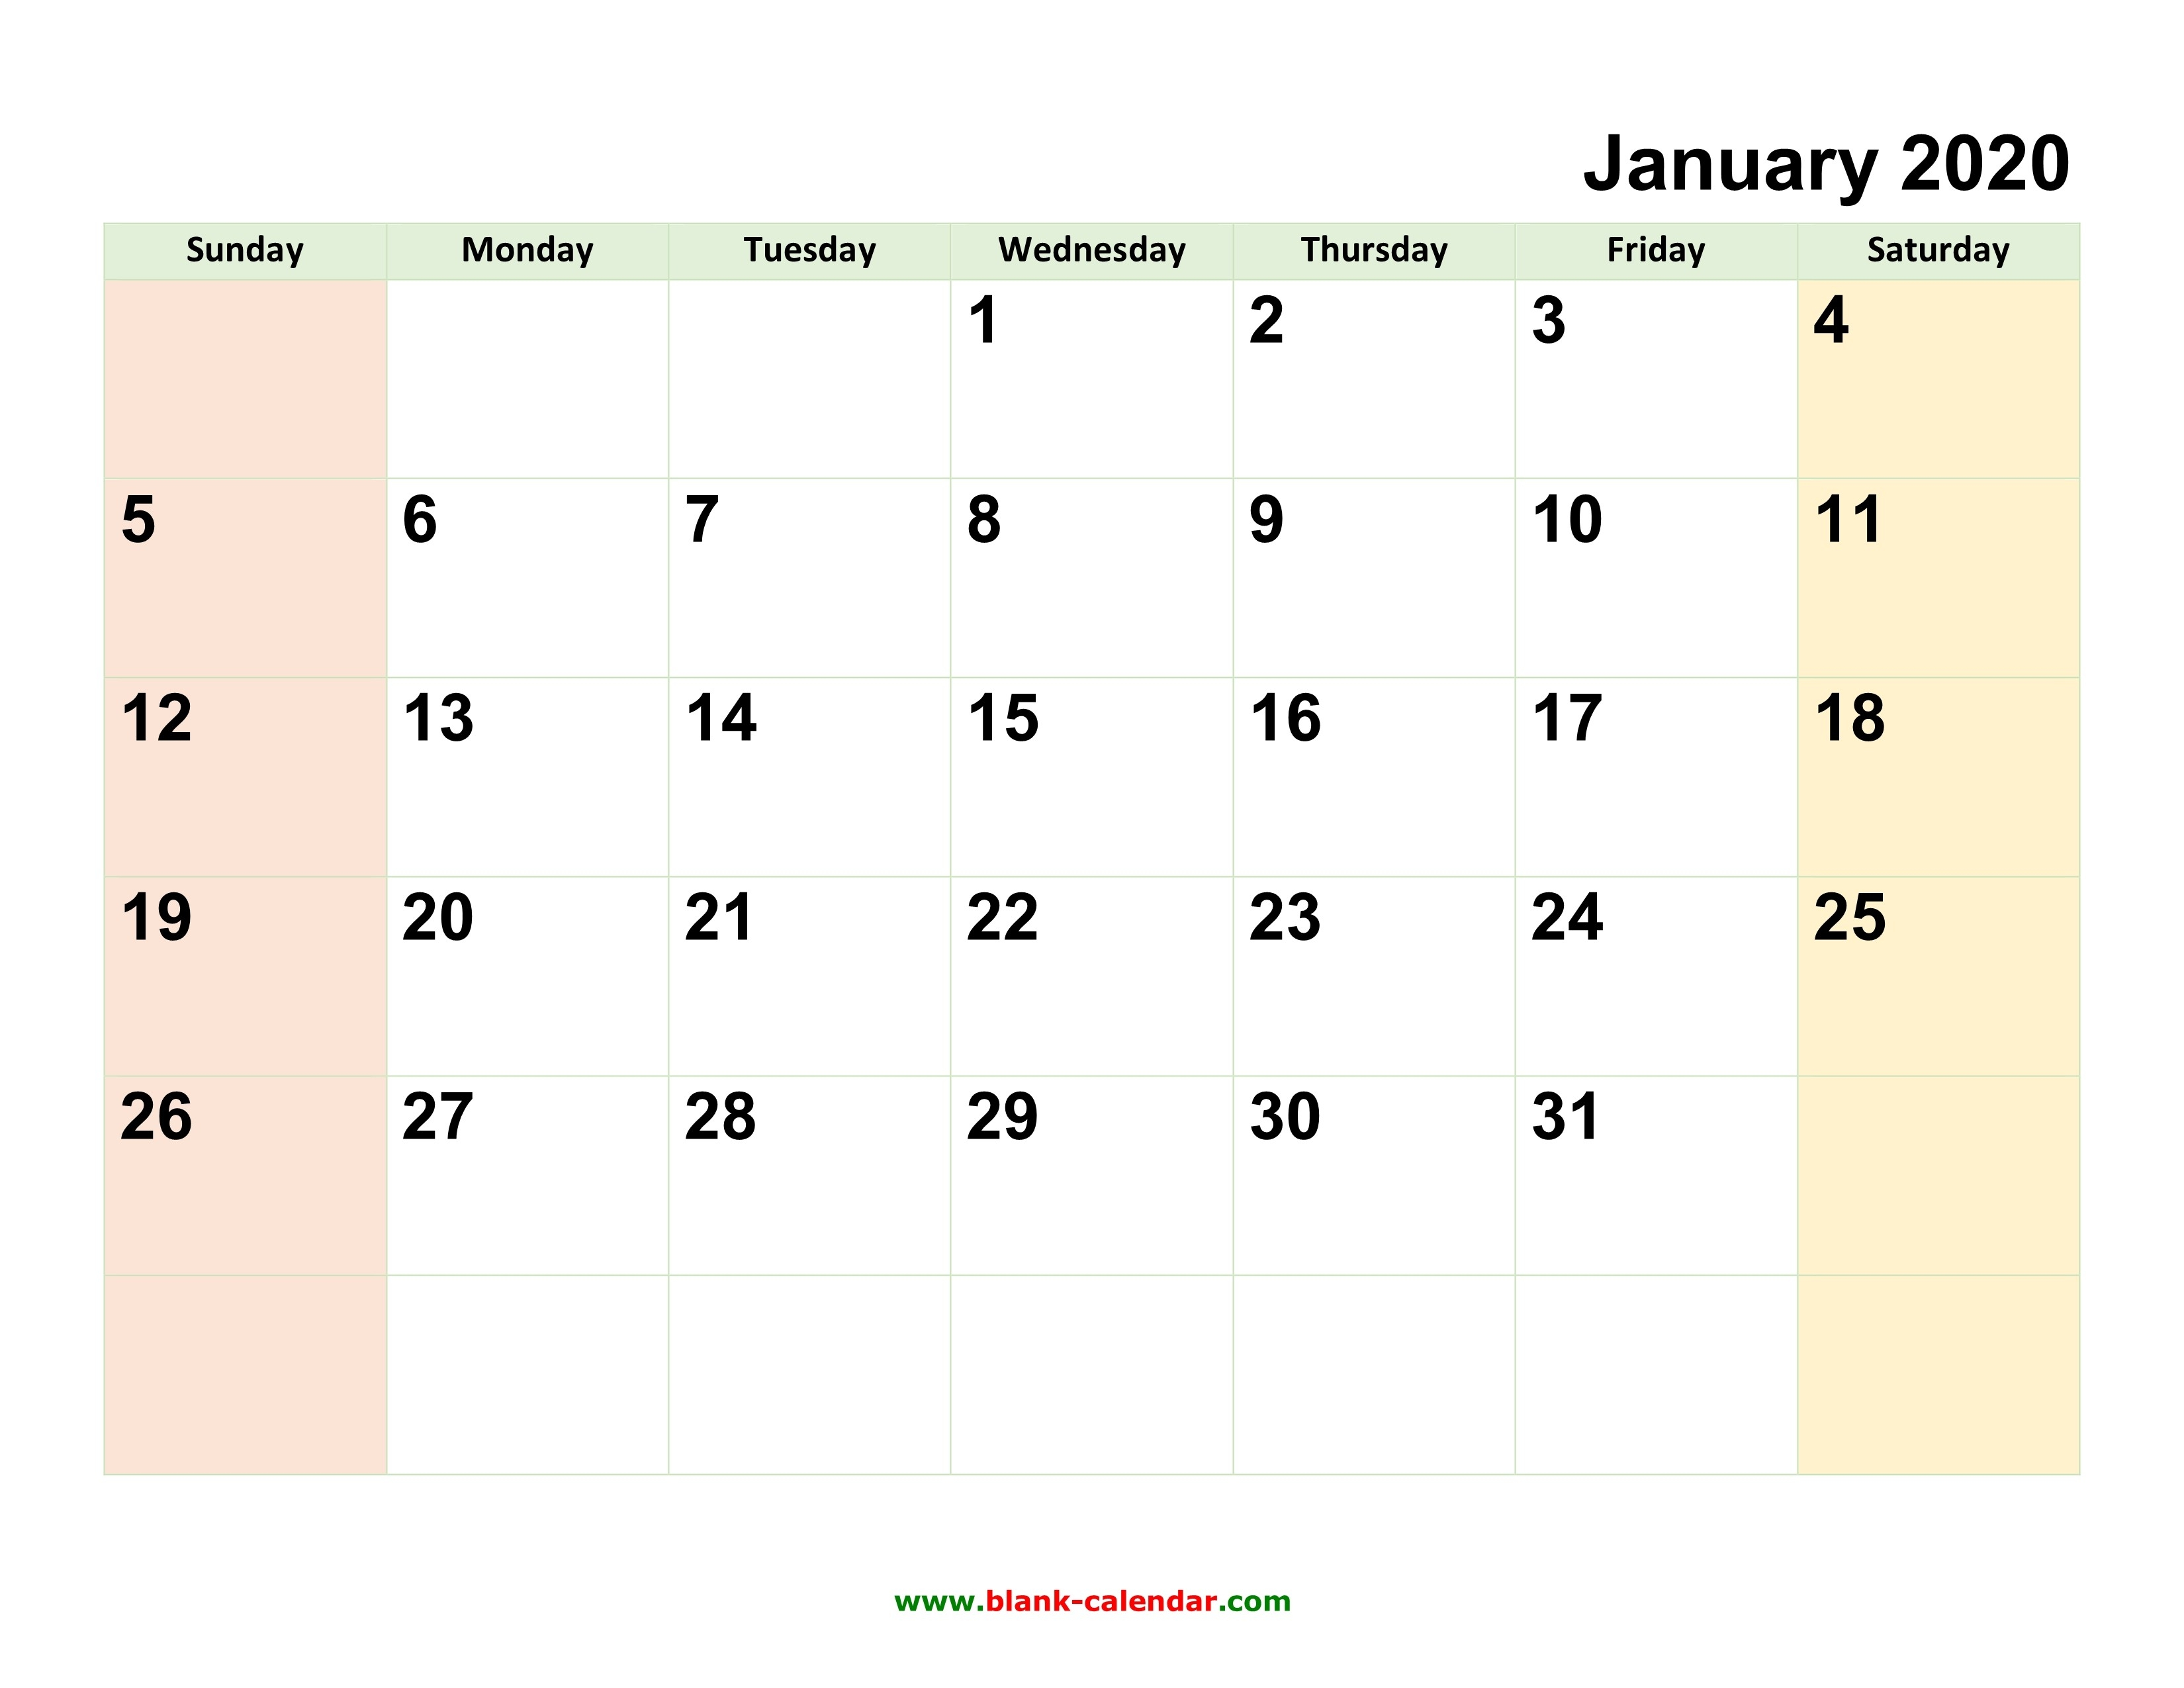 Monthly Calendar 2020 | Free Download, Editable And Printable-Monthly Calendar That Can Be Edited